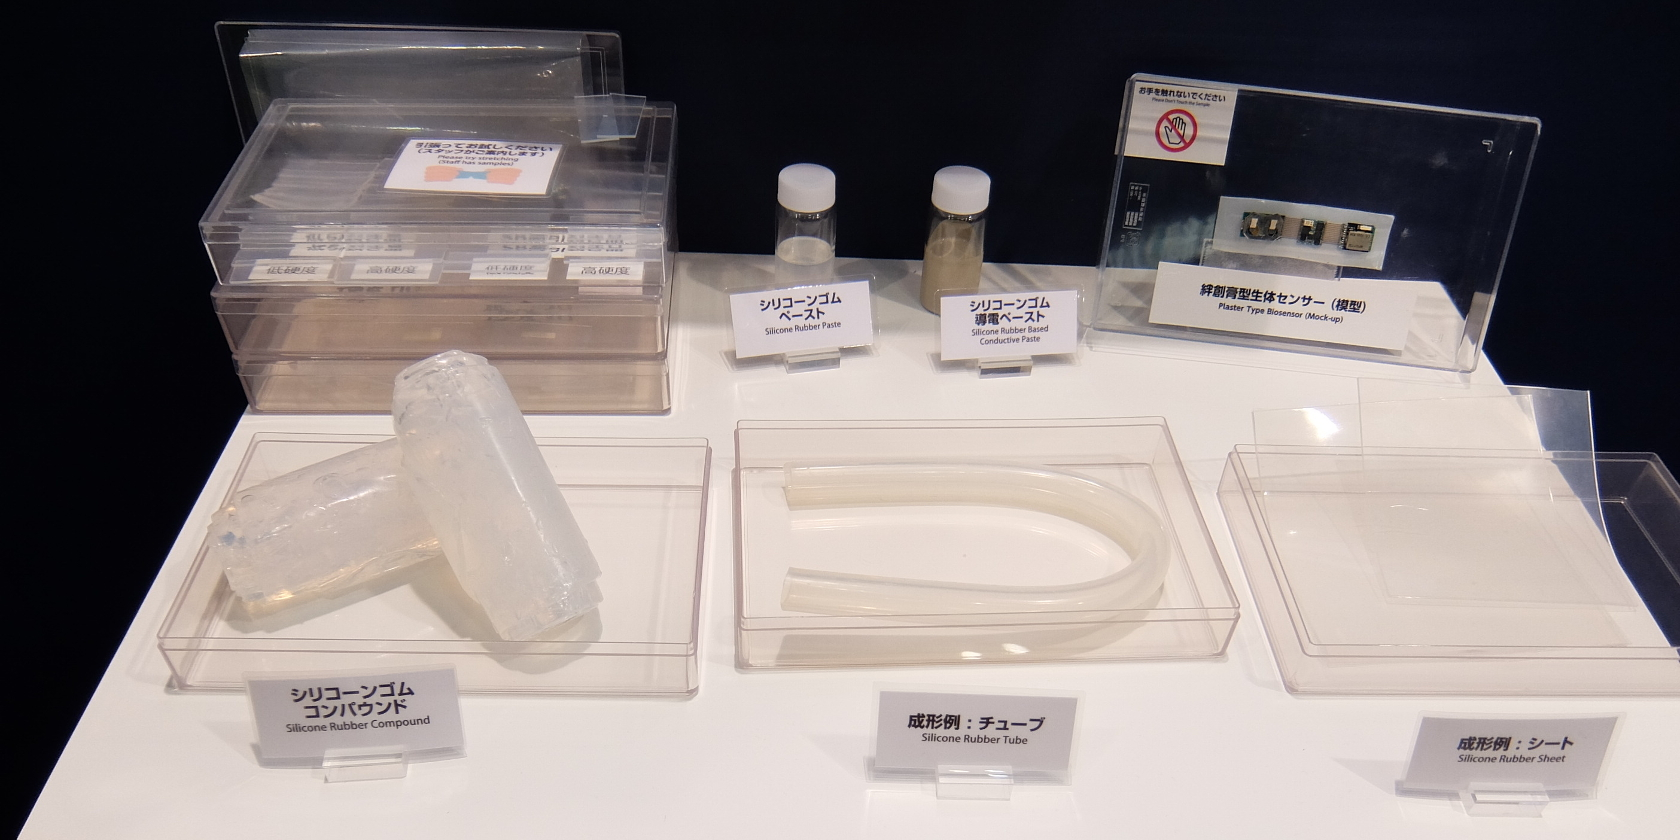 Sumitomo Bakelite Develops Silicone Rubber Compound With High Tear Strength